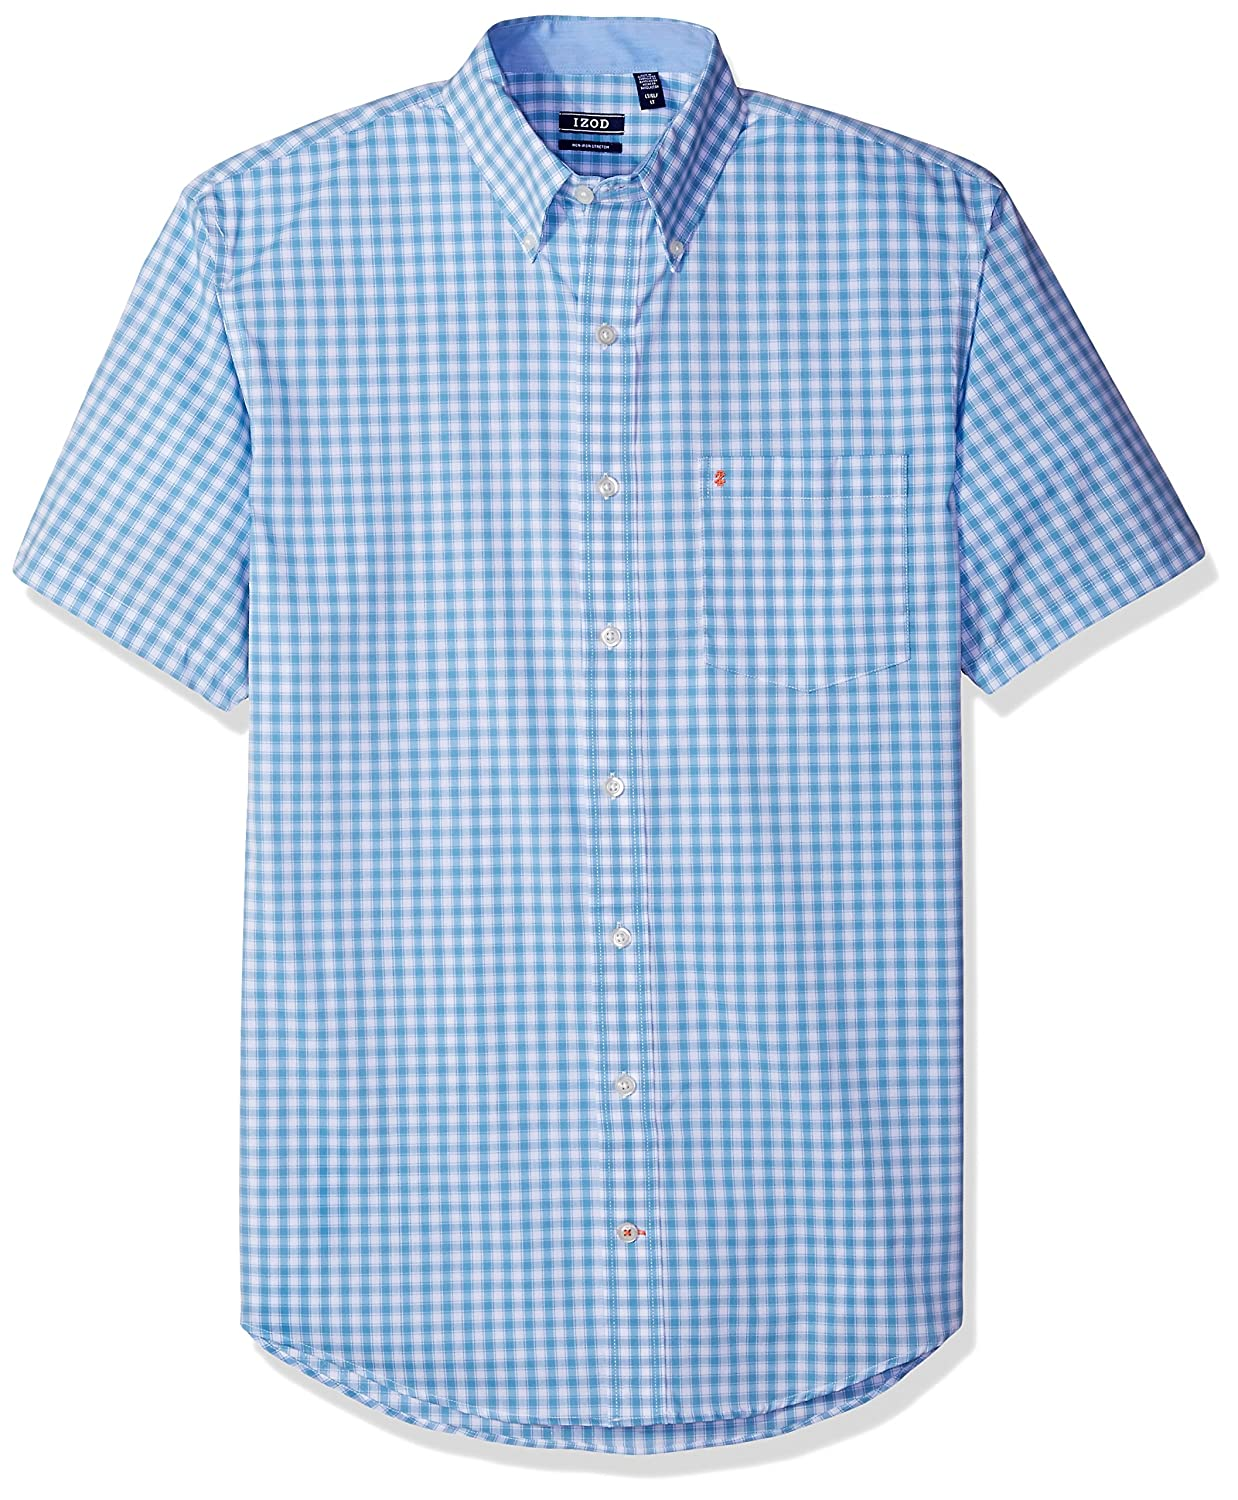 Izod Mens Big-Tall Big and Tall Advantage Performance Short Sleeve Check Shirt IZOD Men' s Sportswear 45B3738